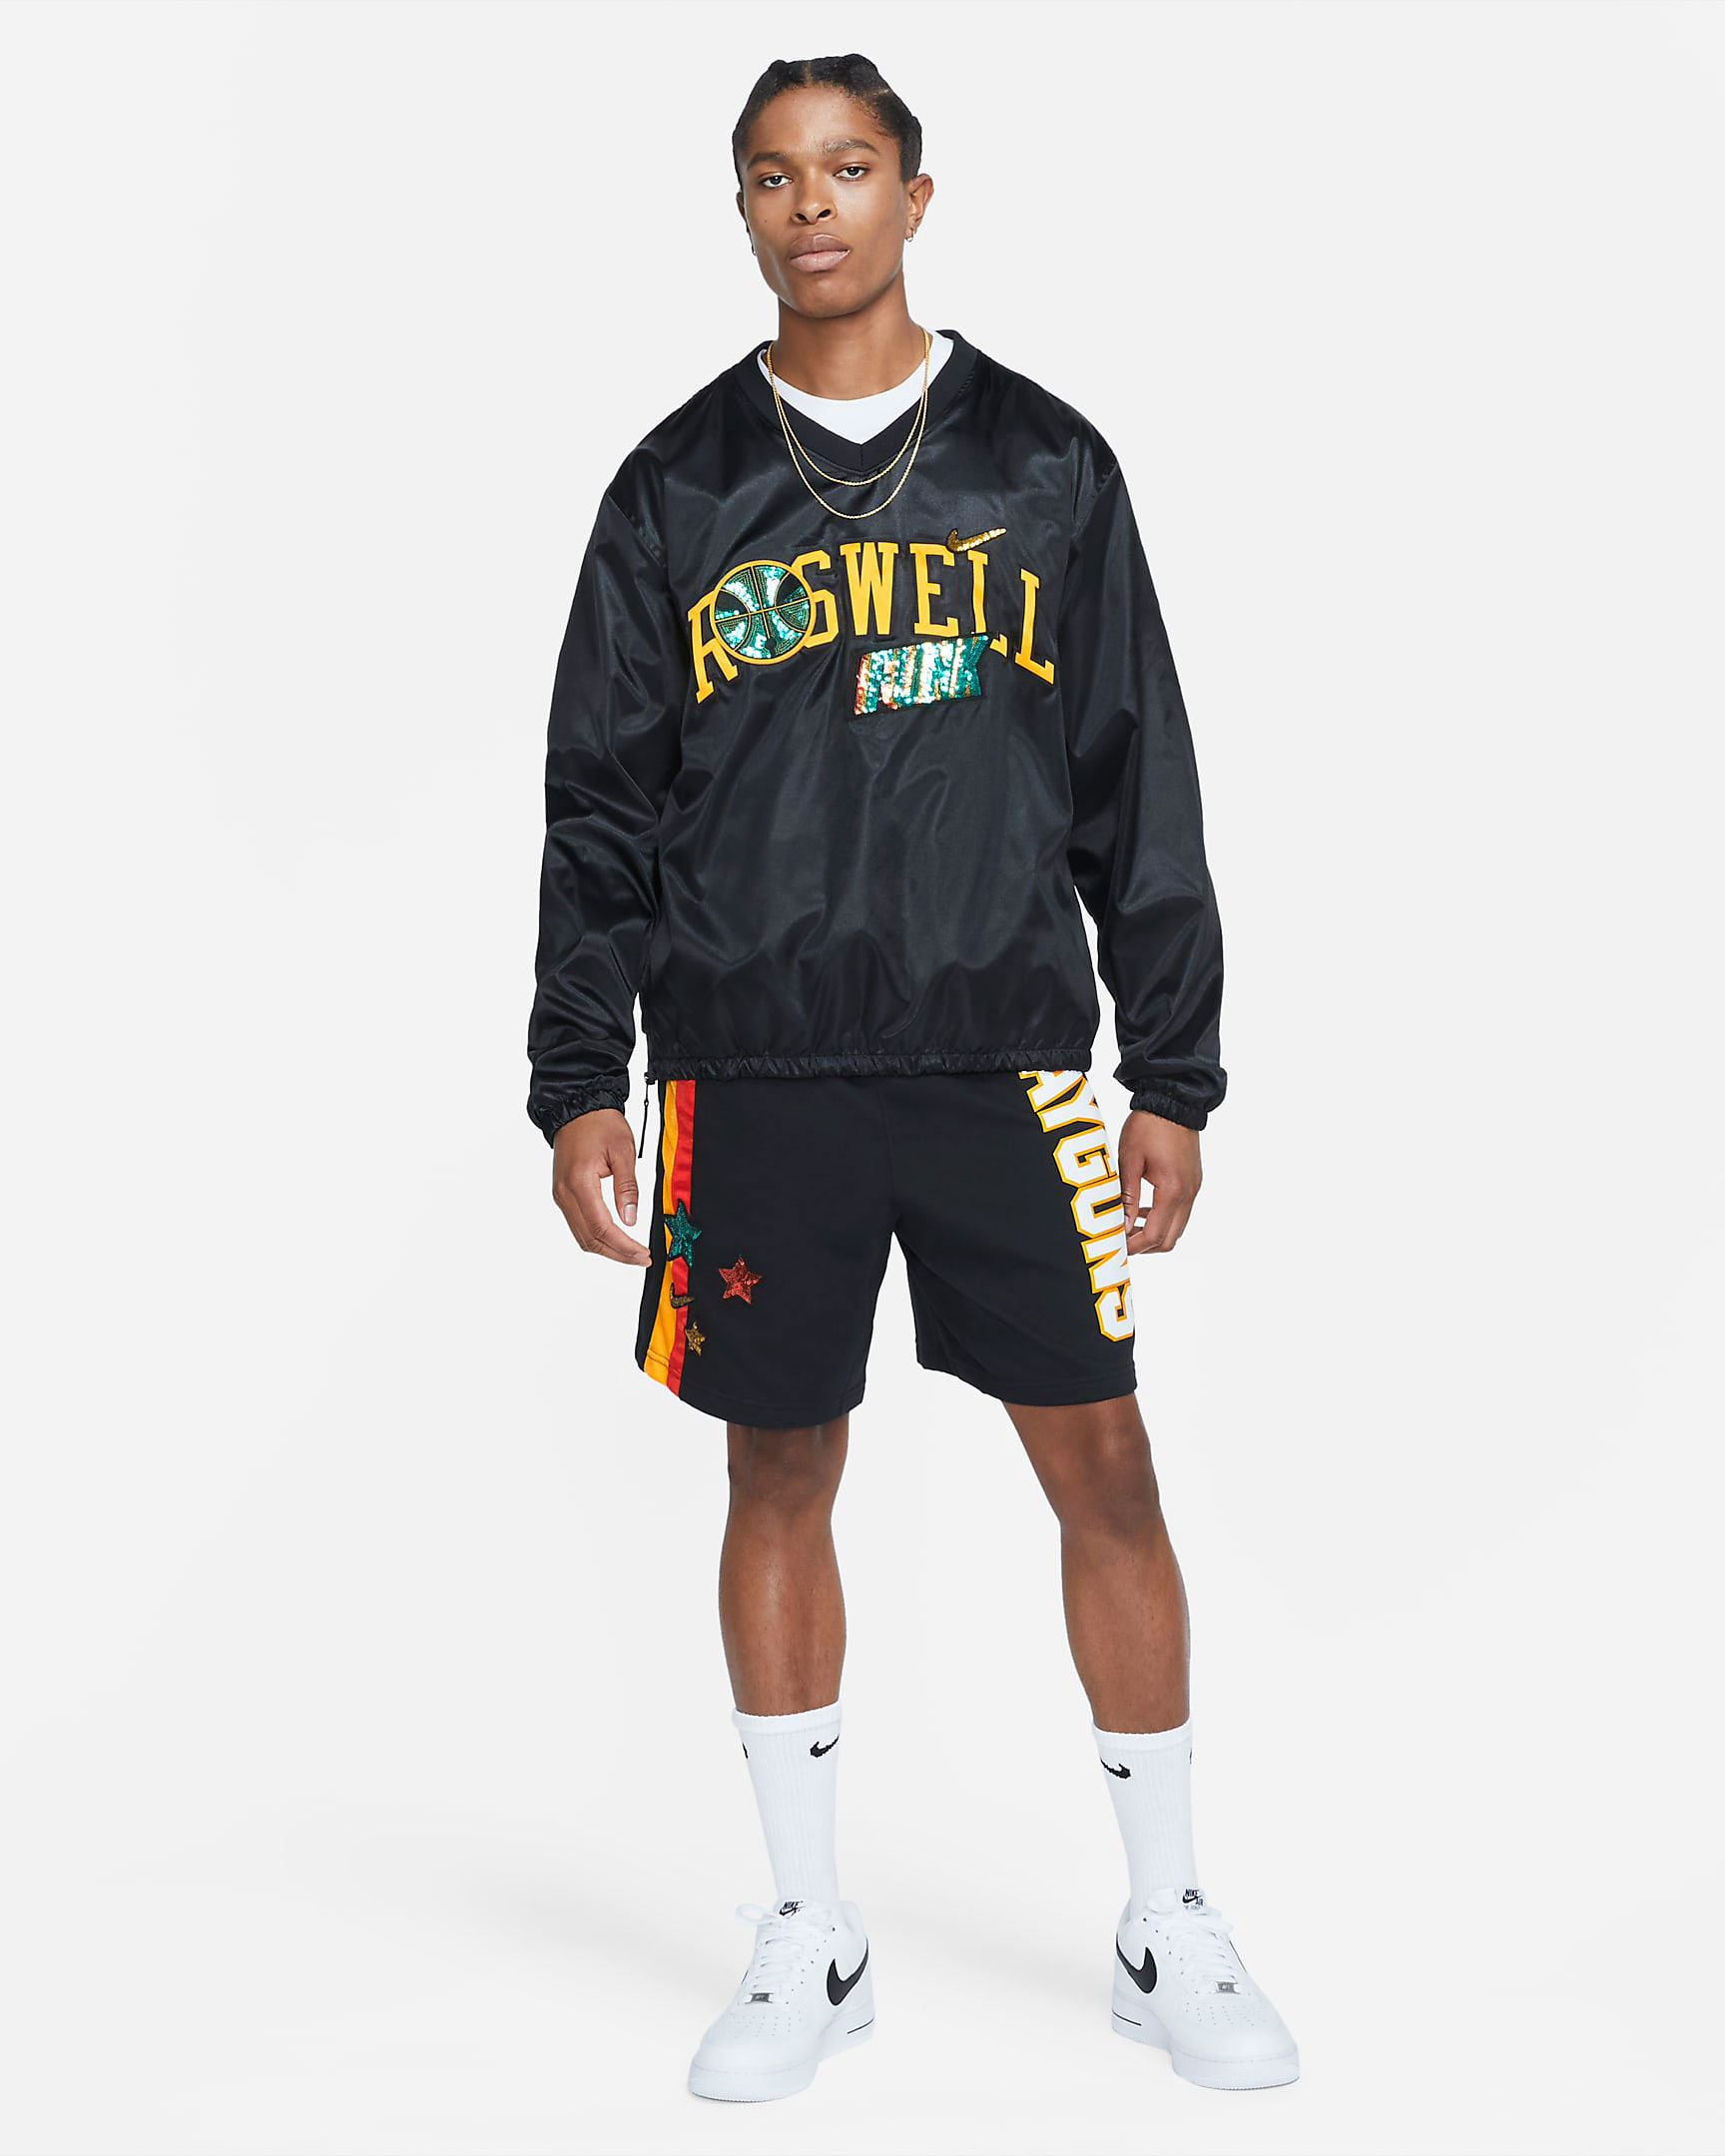 nike-roswell-rayguns-shirt-shorts-outfit